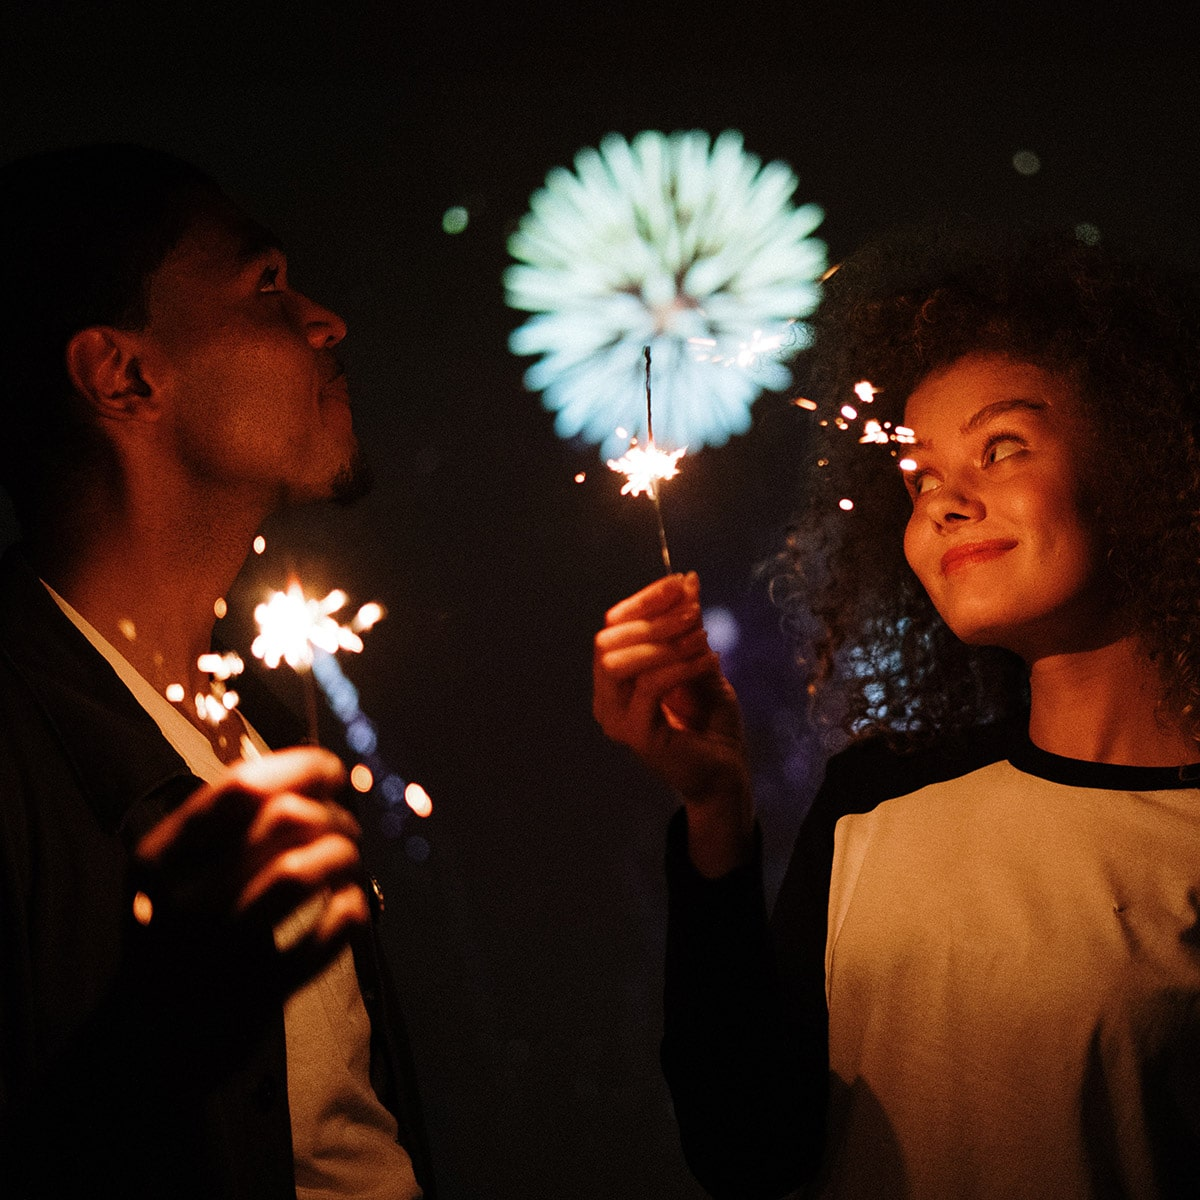 Image of 2 Teenagers Sharing a Sparkler While Watching the Fireworks